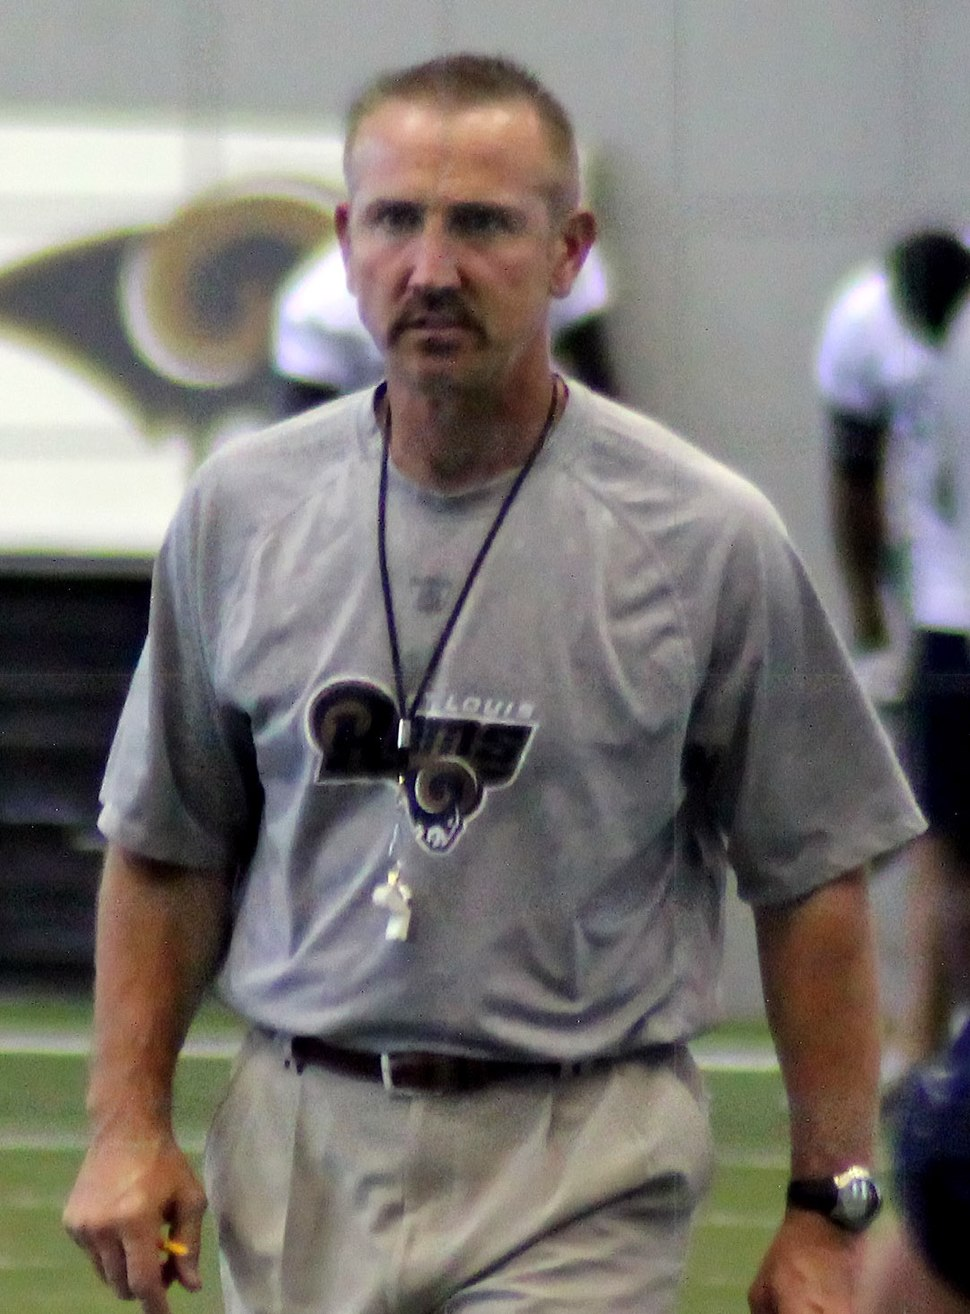 Candid waist-up photography of Spagnuolo on the field in the St. Louis Rams indoor practice facility wearing a grey Rams t-shirt and khaki pants with a whistle hanging from a string around his neck